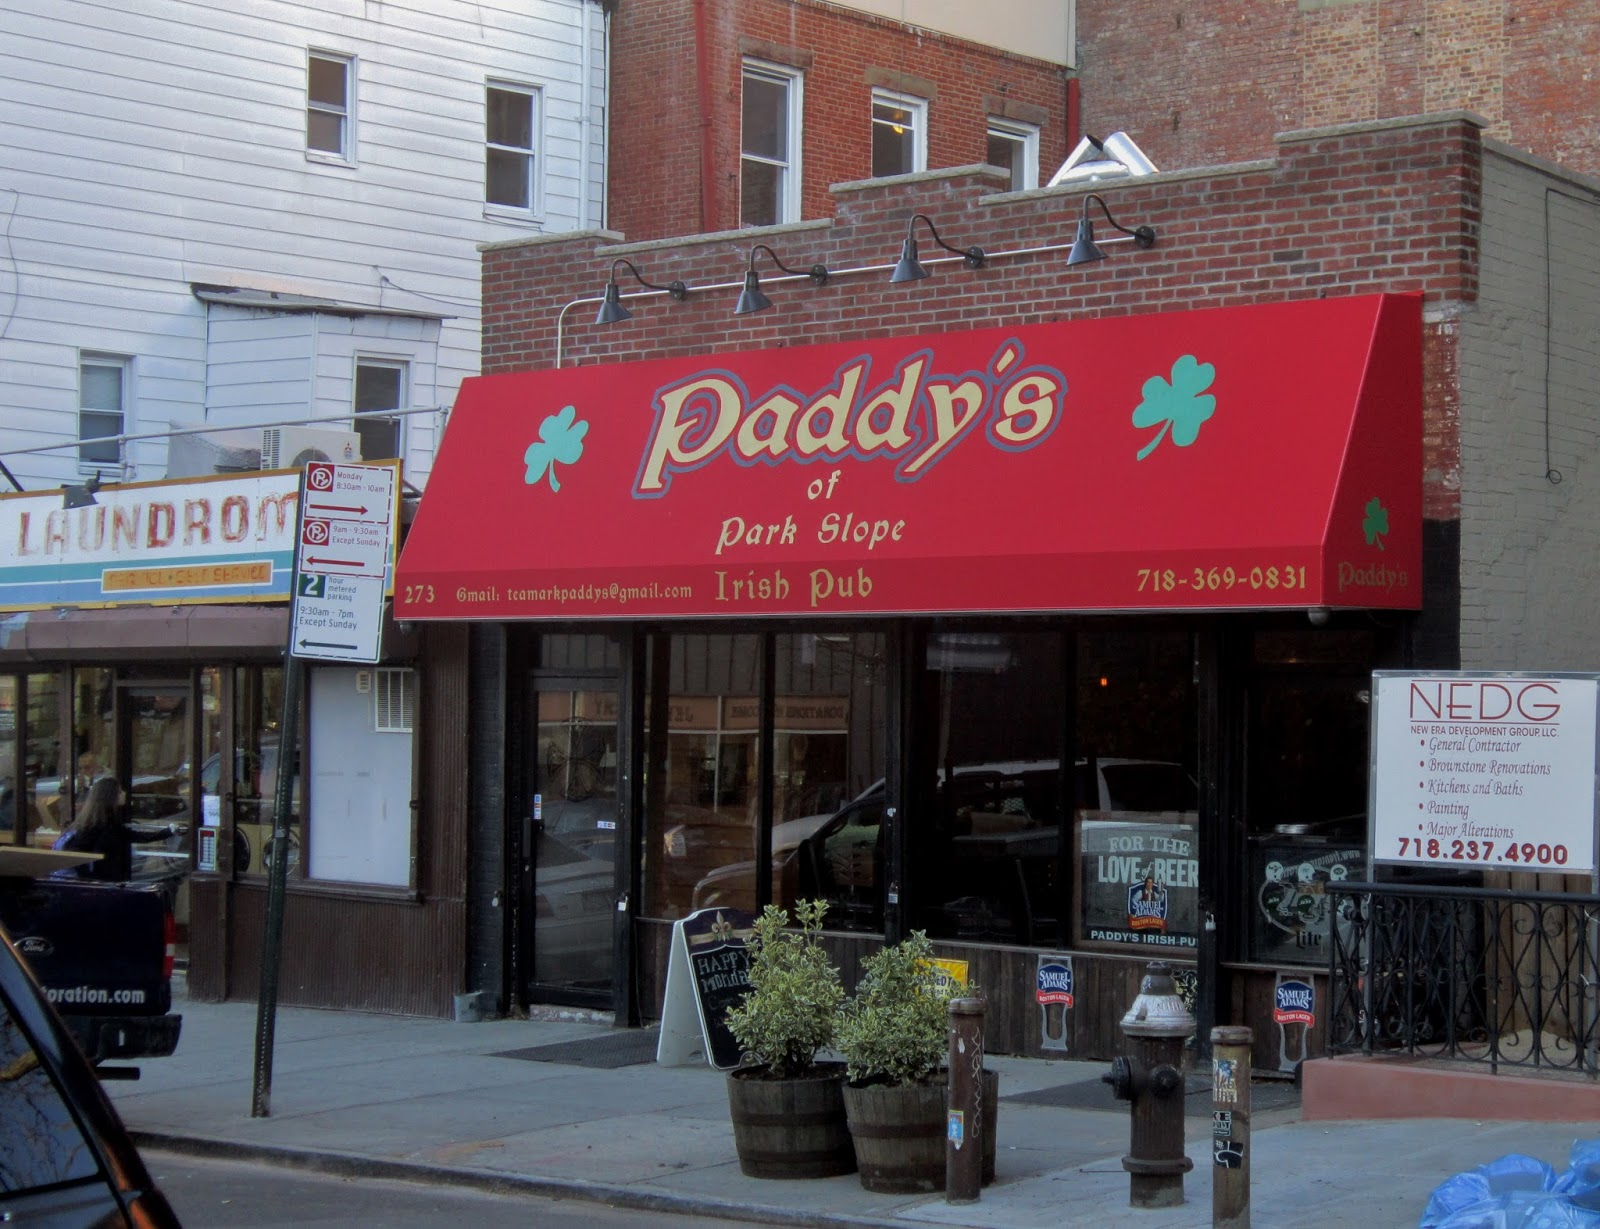 Blue apron park slope - Paddy S Of Park Slope Is Now Open At Fifth 13th The Irish Bar Replaces Barely There At All Brooklyn Voodoo Lounge Which Came In After Metal Bar Lucky 13